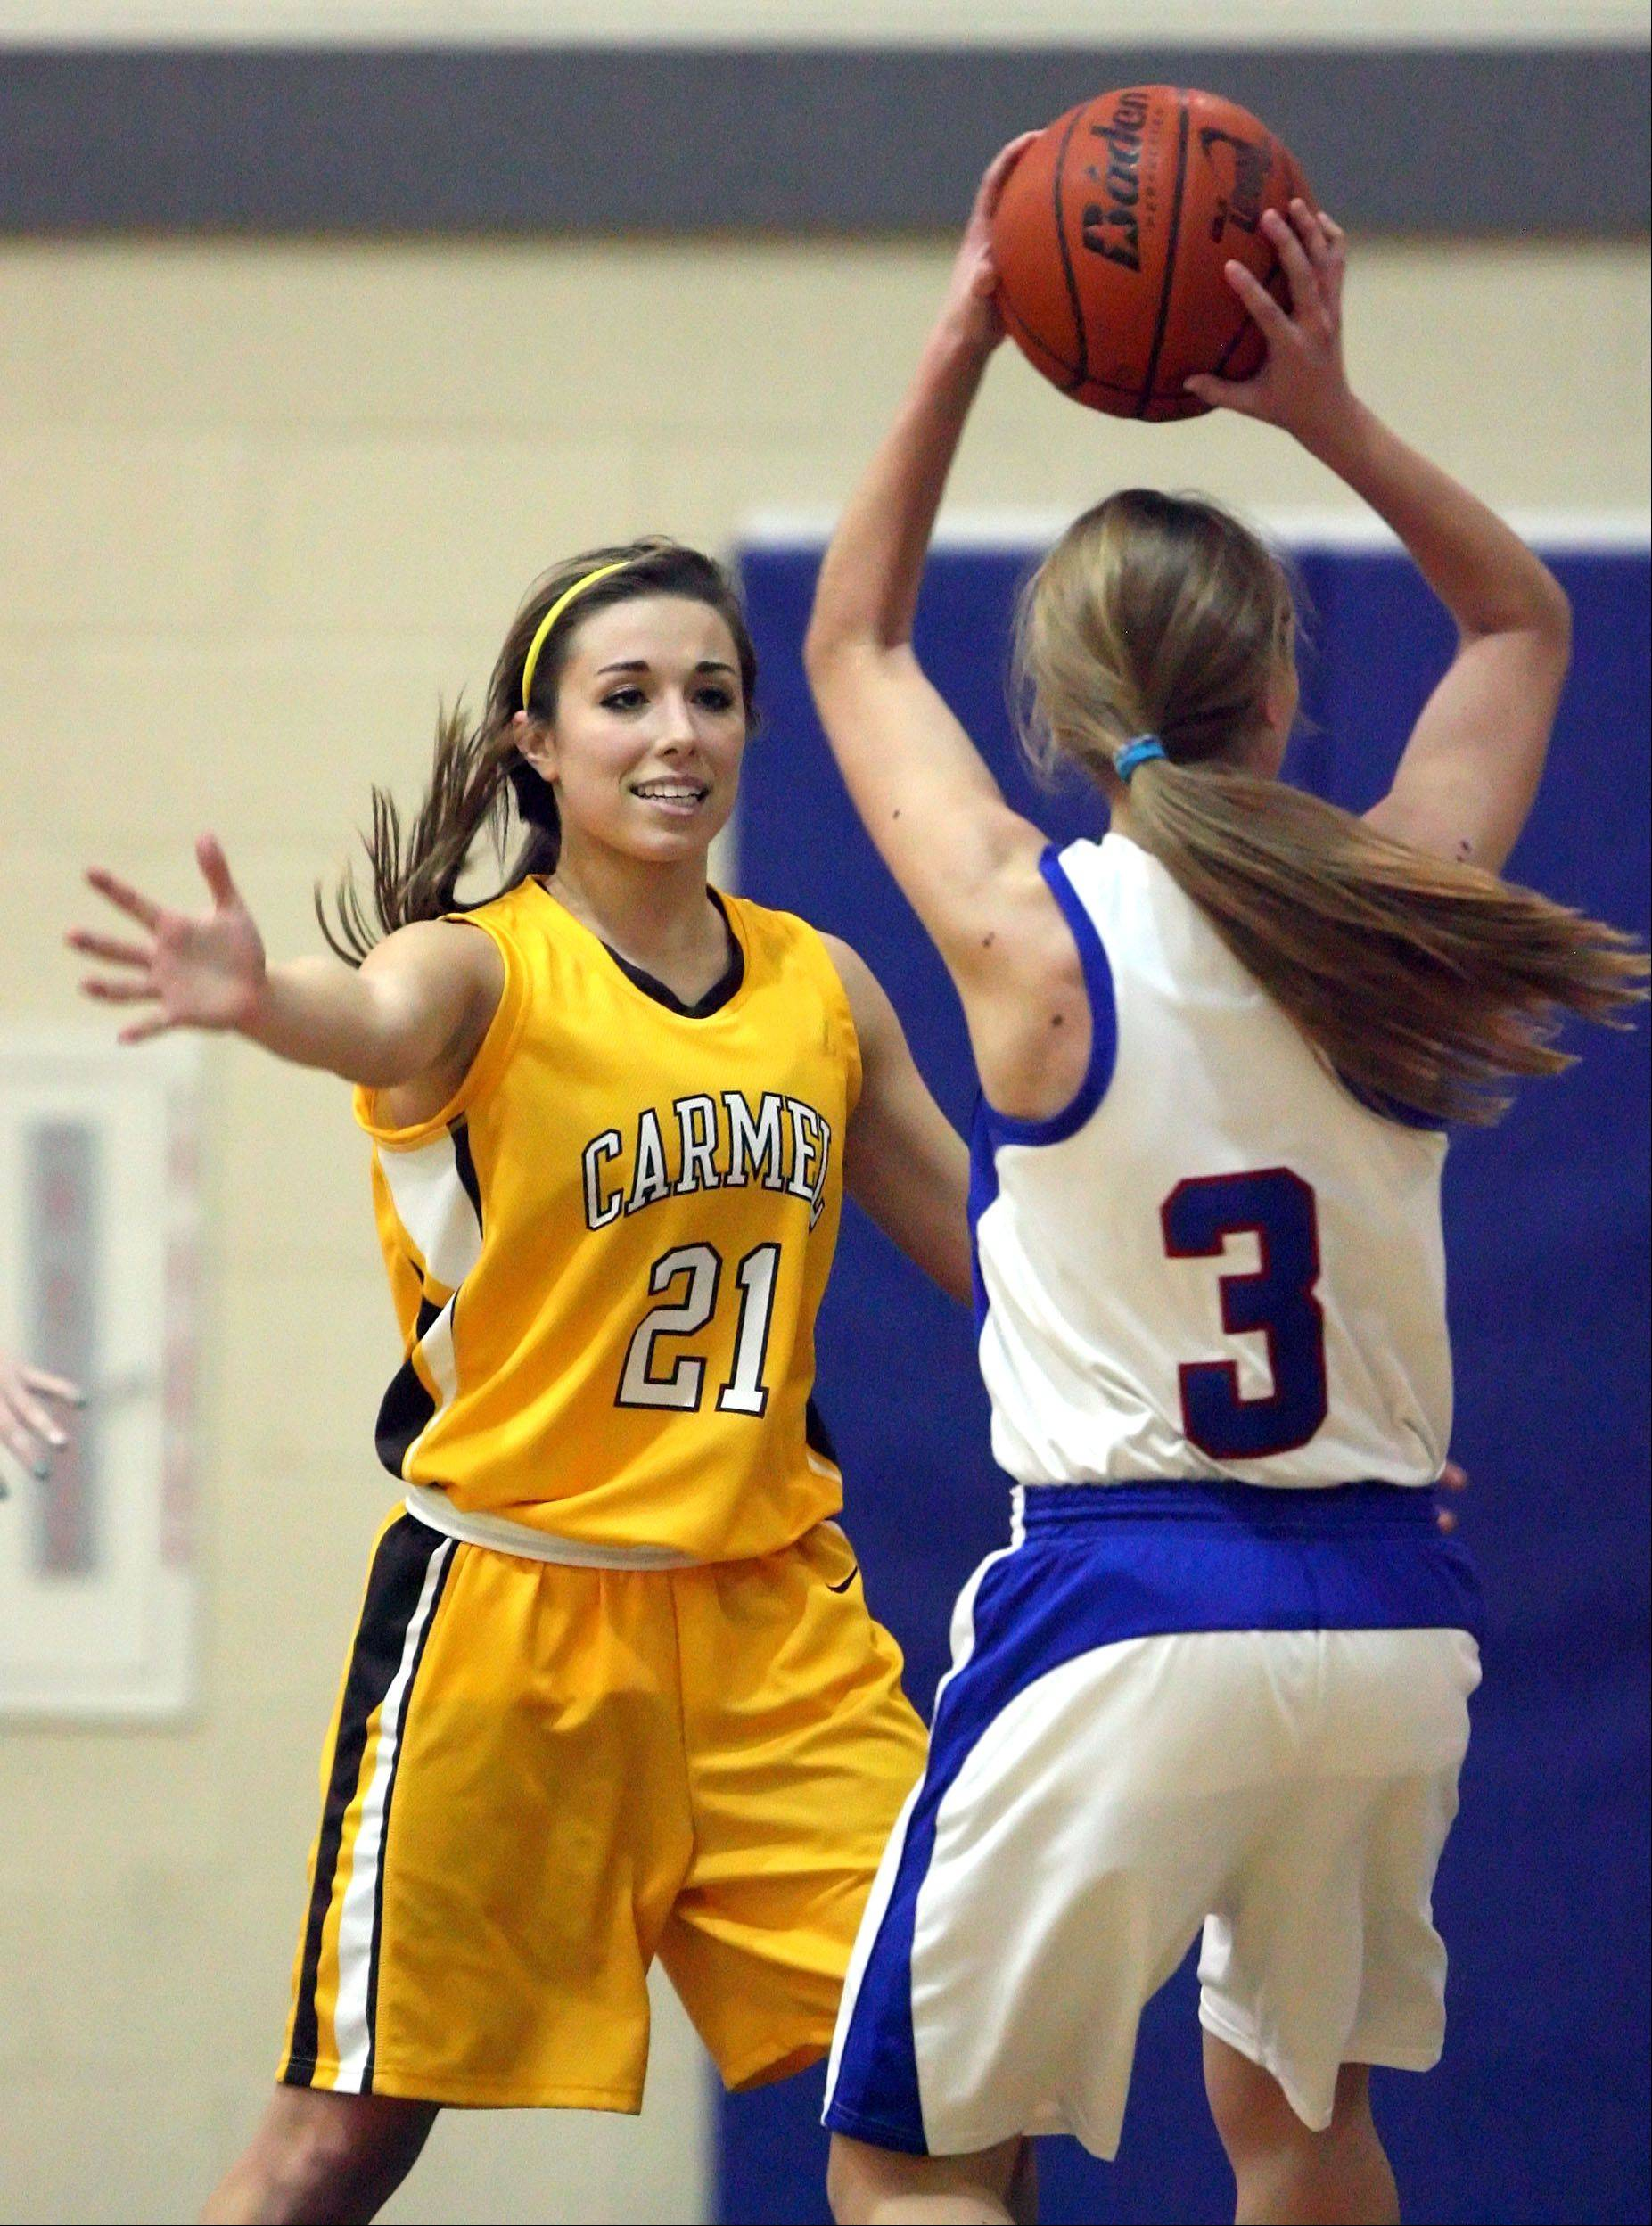 Carmel's Nicole Bitter, left, defends against Lakes' Heather Hurlbut on Monday night at Lakes.